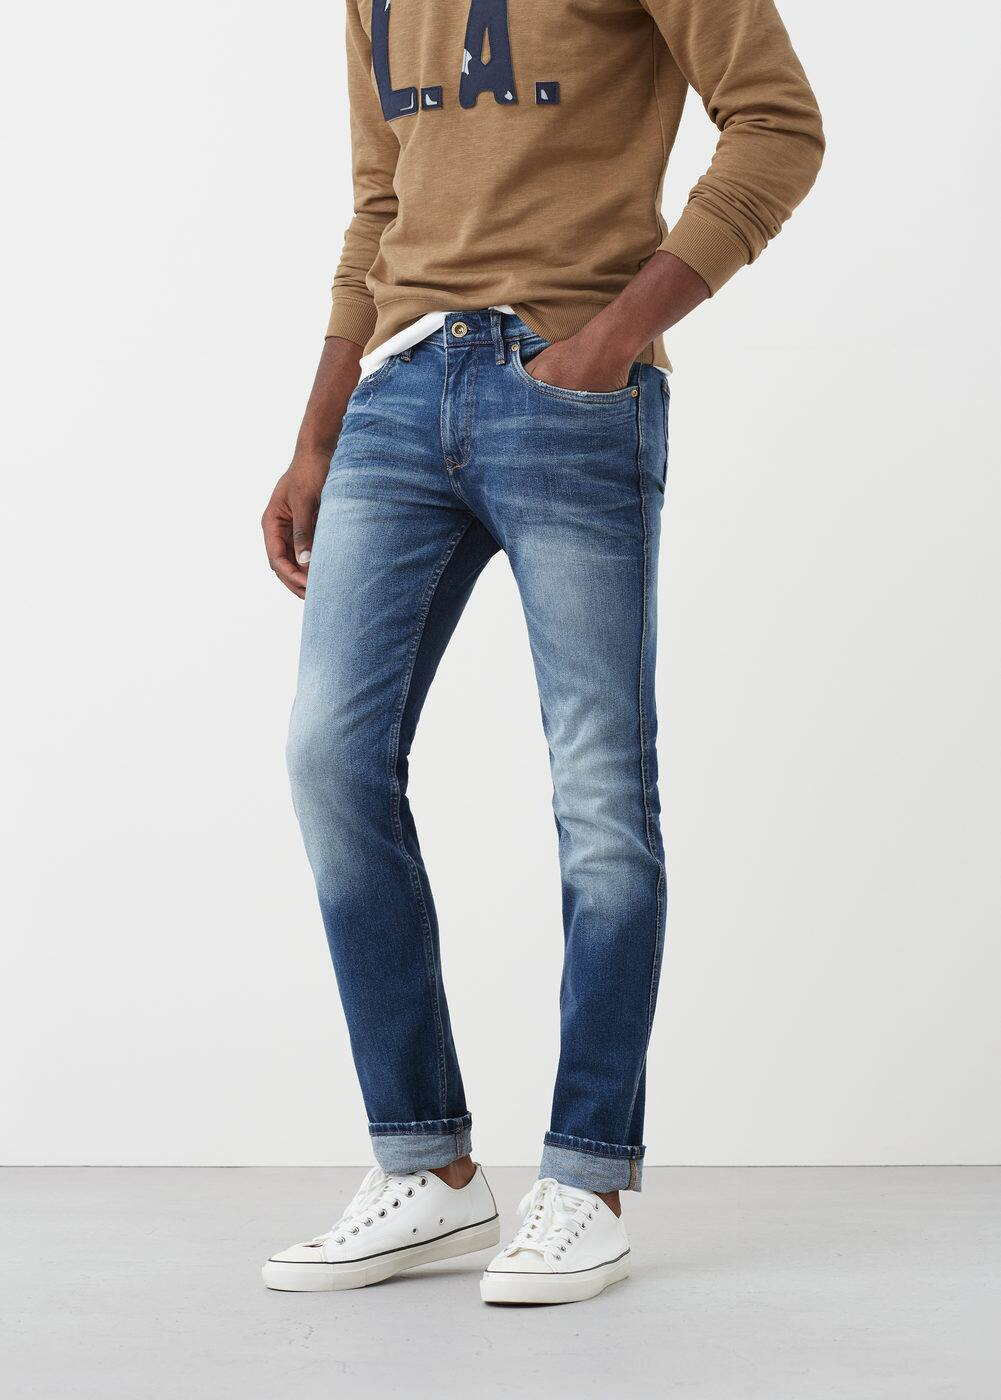 Jeans tim slim-fit lavado medio | MNG